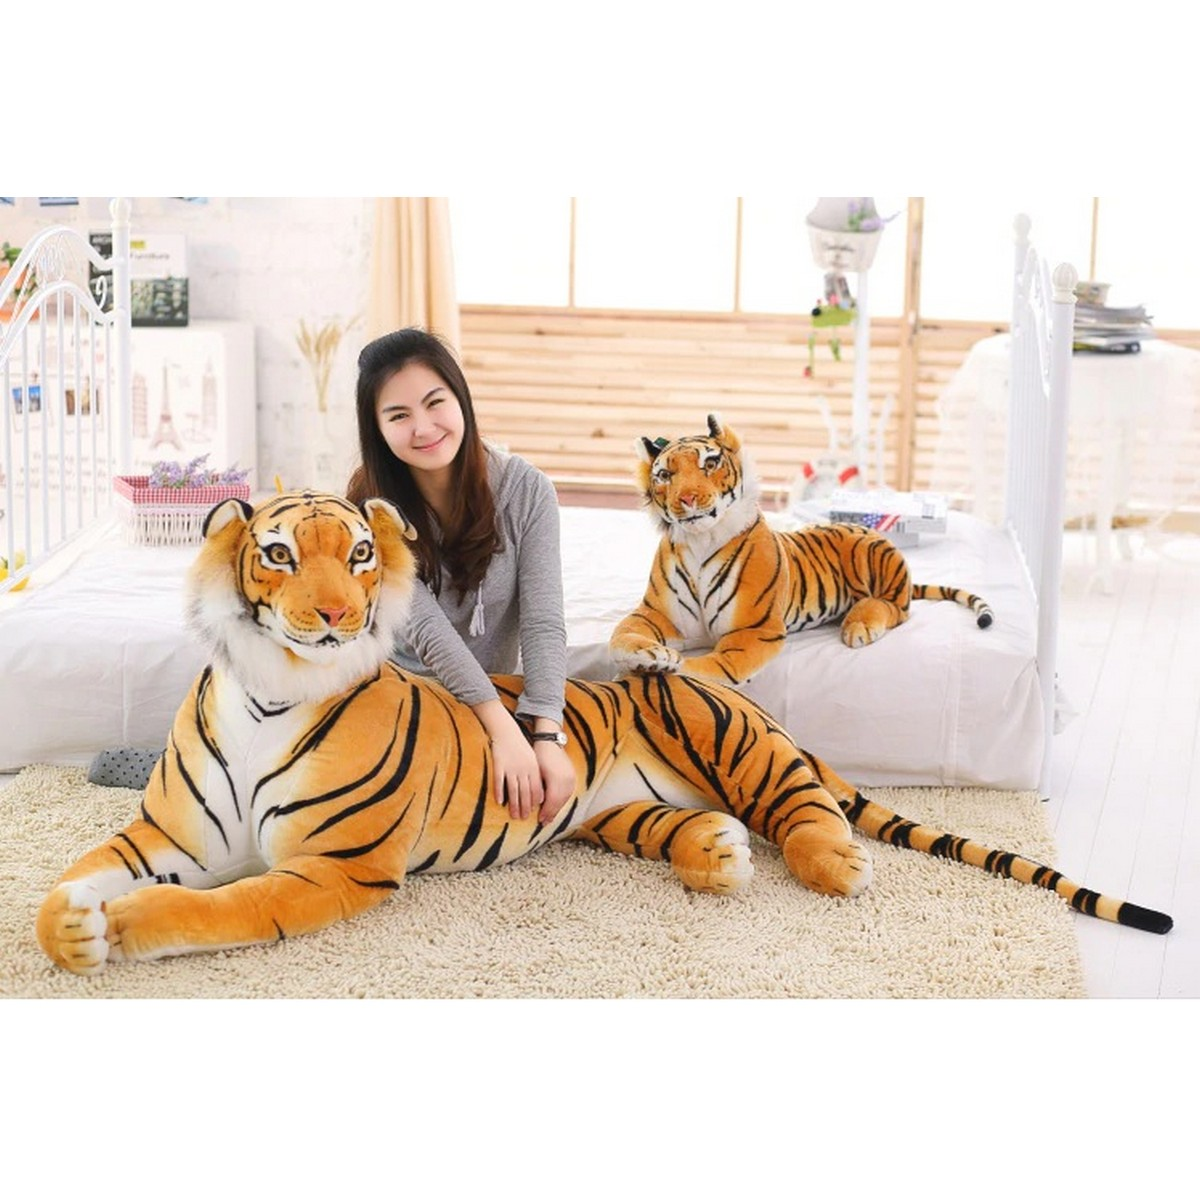 Hot Sale Imported Quality Realistic Soft Stuff Animals Tiger Plush Stuffed Toys For Kids Gifts